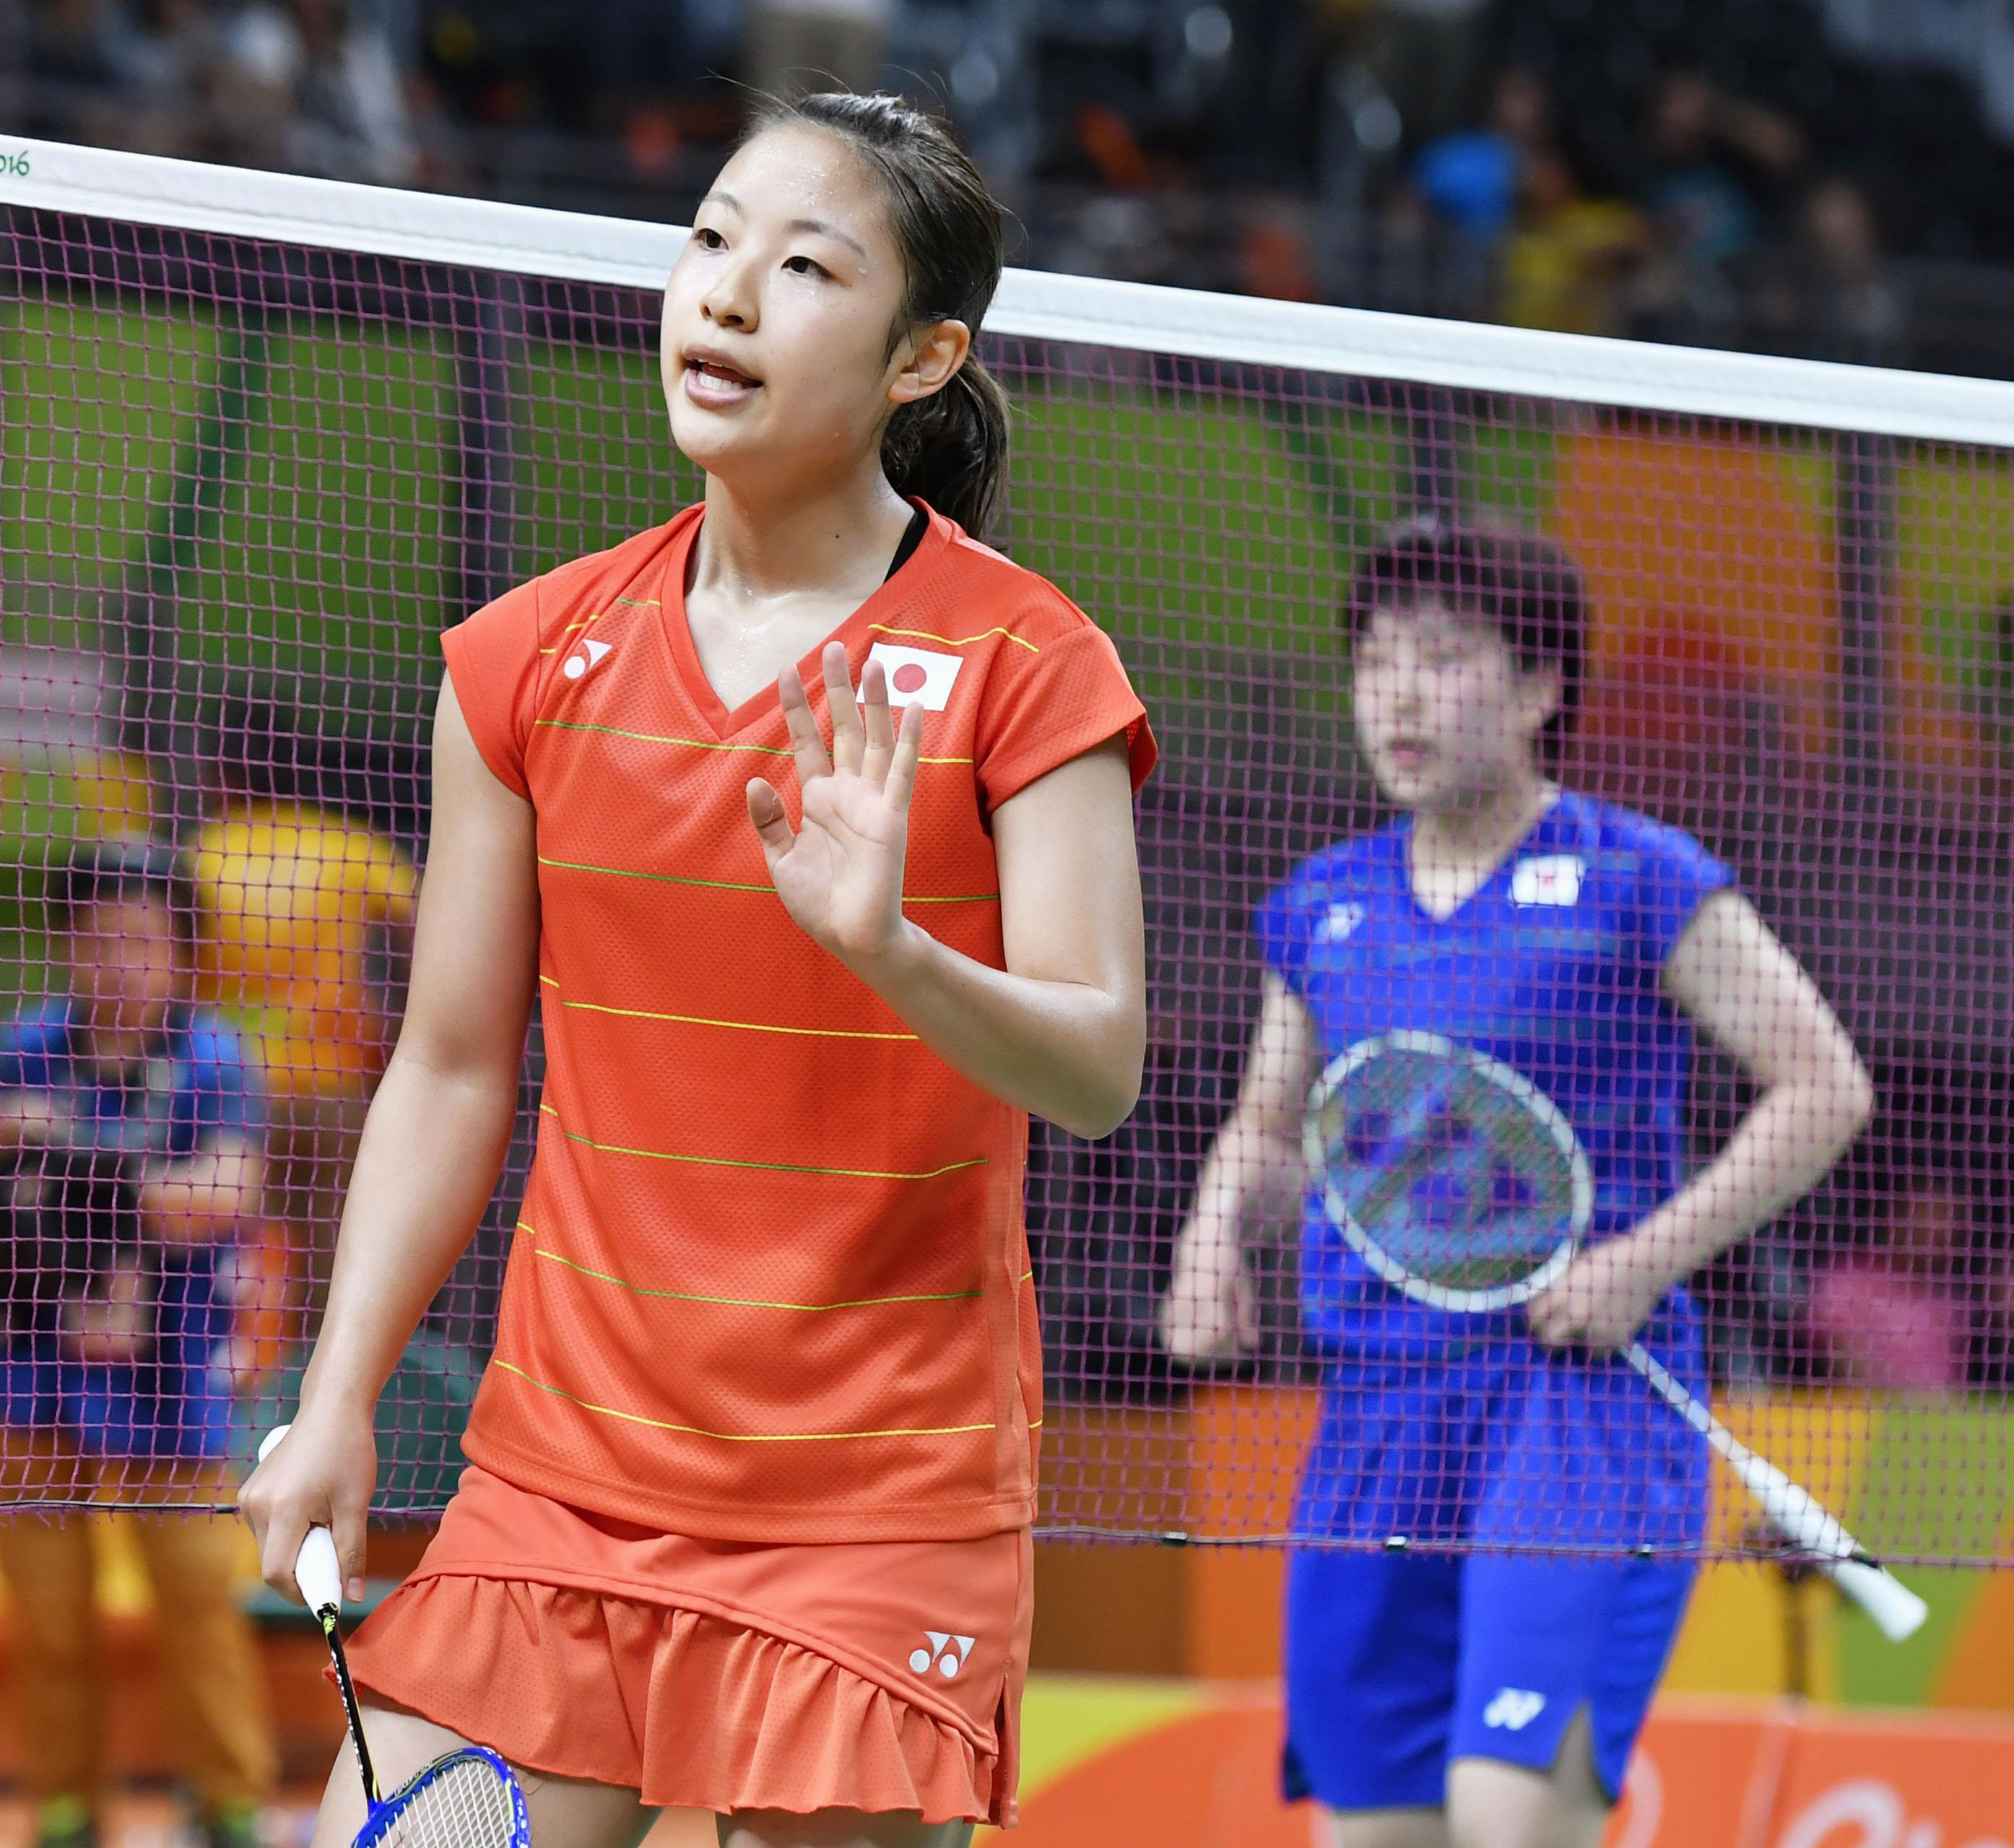 Nozomi Okuhara waves her hand after winning the All-Japan quarterfinal match against Akane Yamaguchi in the women's badminton singles on Tuesday at the 2016 Summer Olympic Games in Rio de Janeiro. |    KYODO